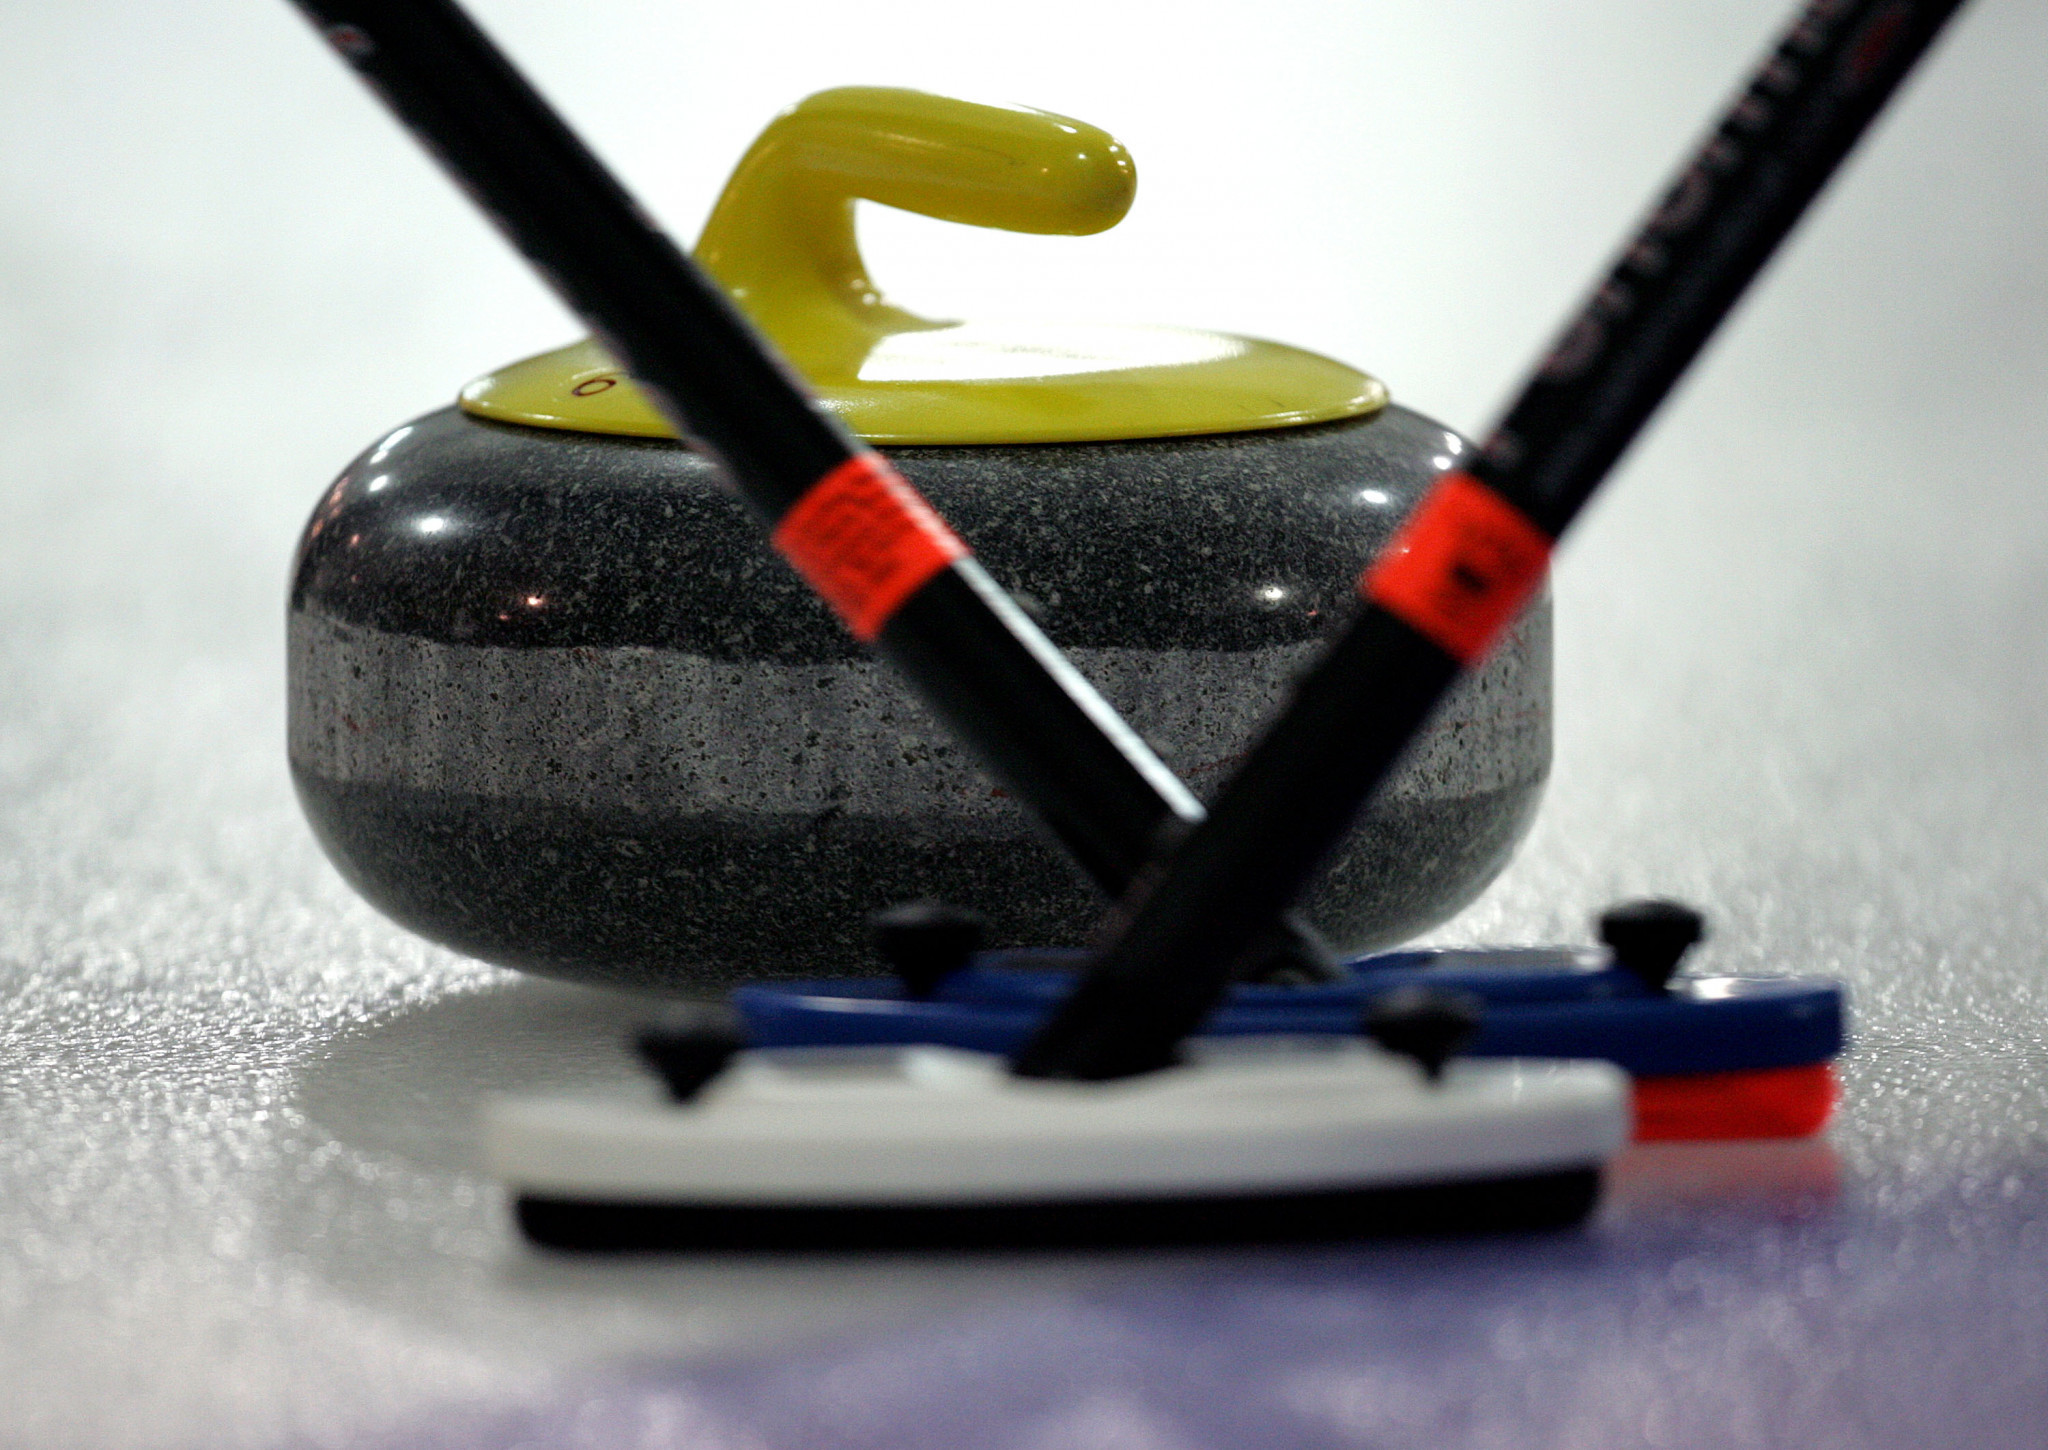 Prince George to host 2022 World Women's Curling Championship following COVID-19 cancellation in 2020